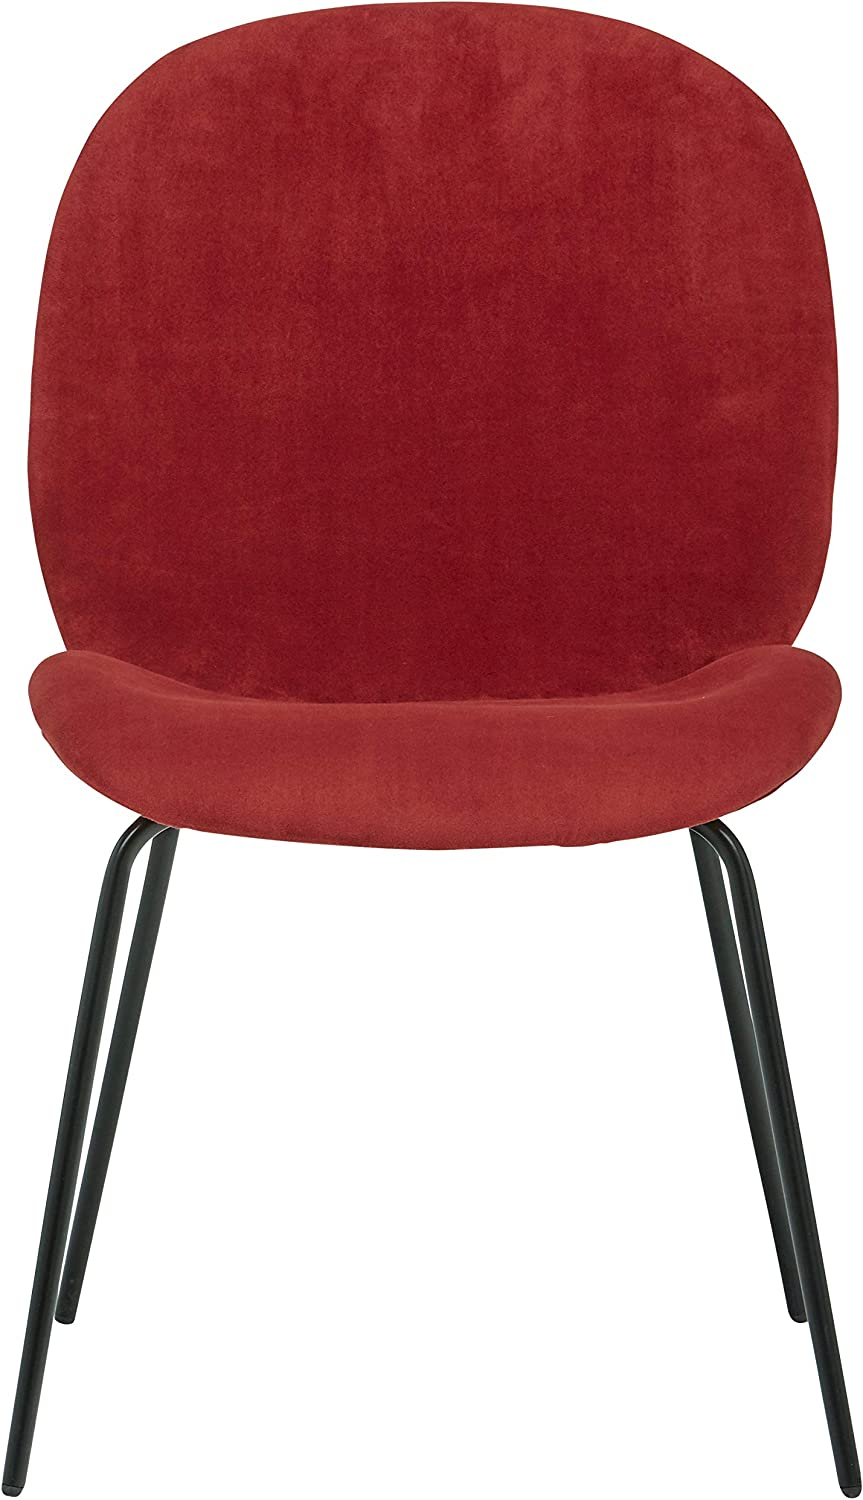 Rivet Weedin Contemporary Velvet Dining Kitchen Chair 33 Inch Height, Set of 2, Rouge Red